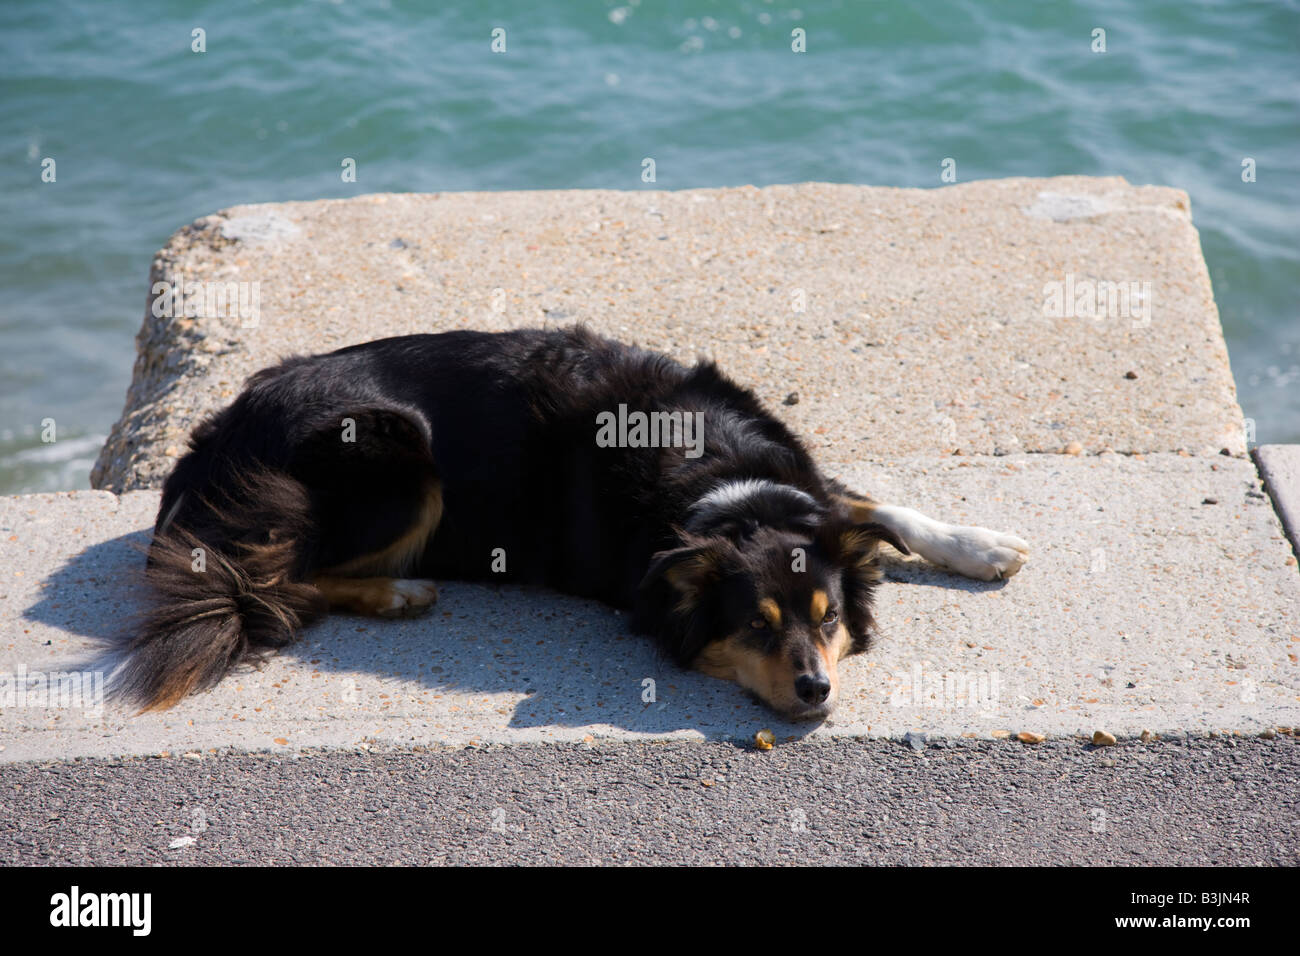 Dog resting on the seafront promenade - Stock Image